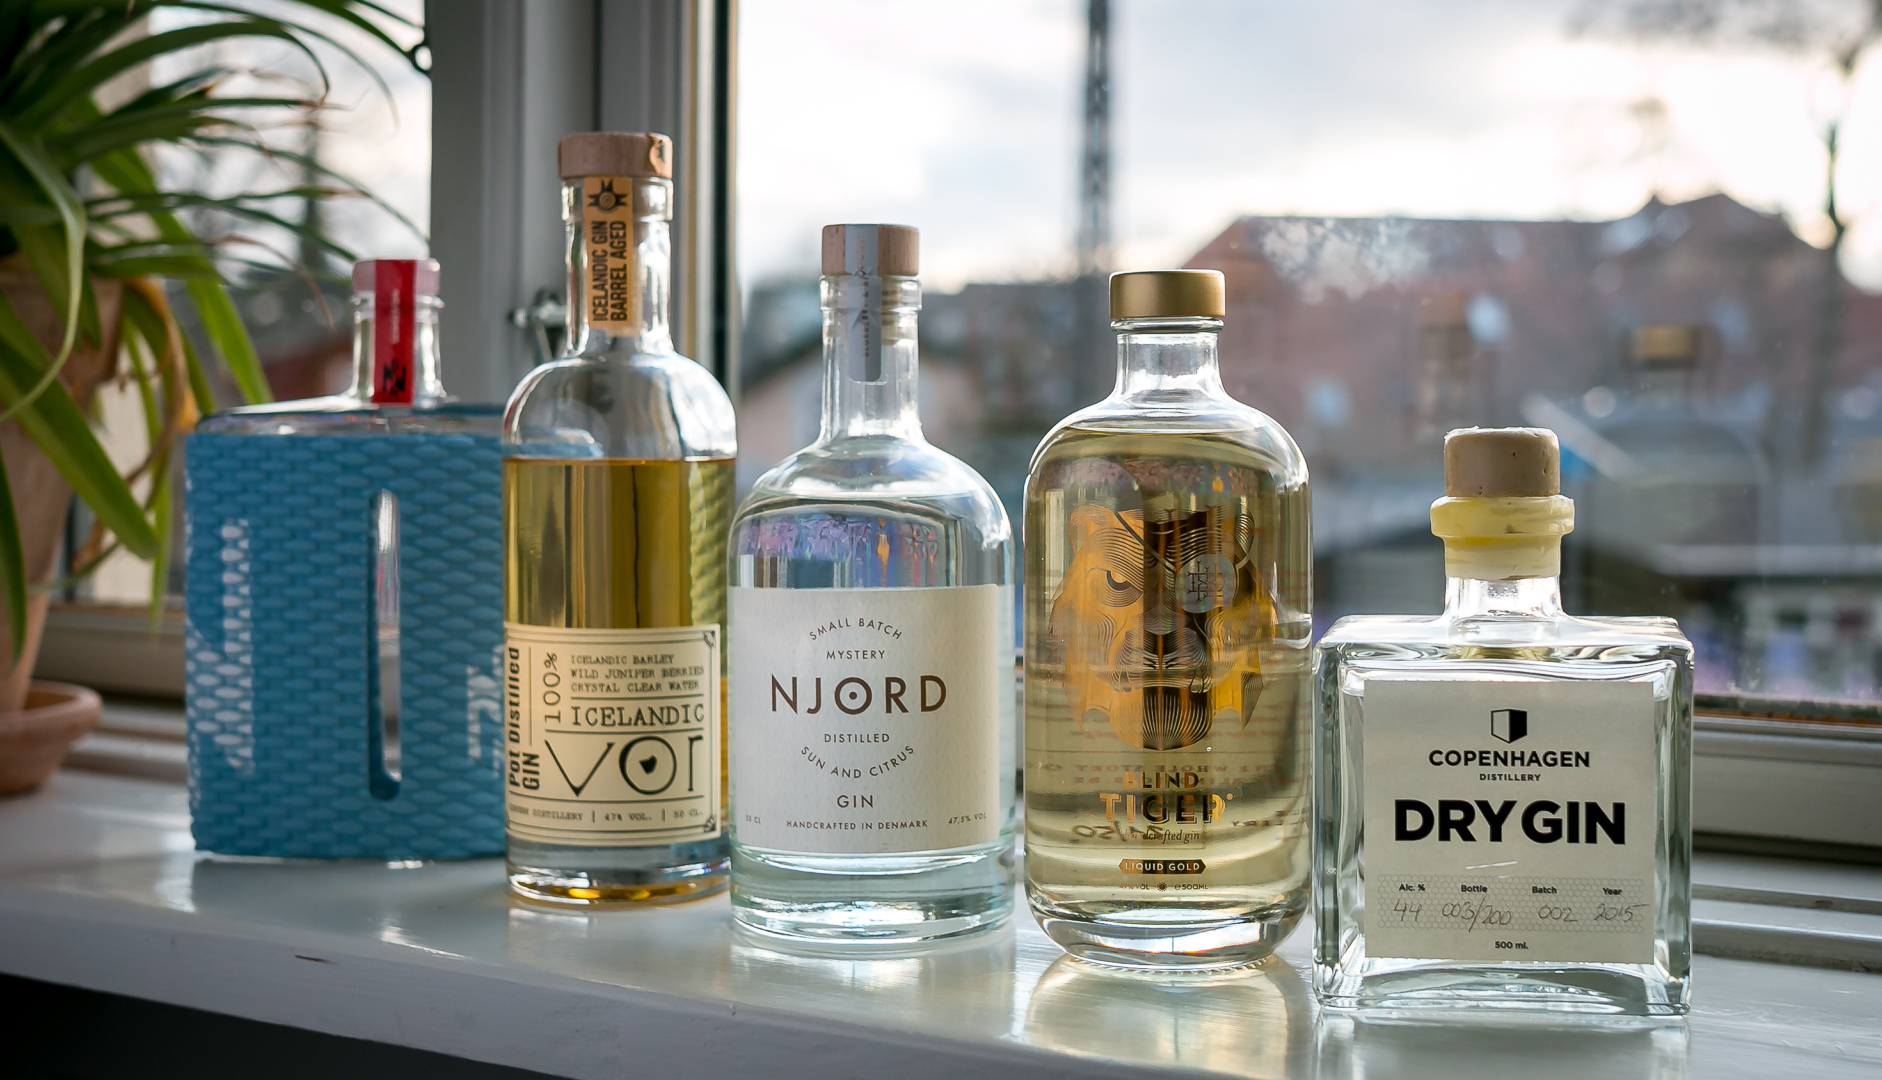 Best Gins of 2015. Photo by Michael Sperling, En Verden af Gin.